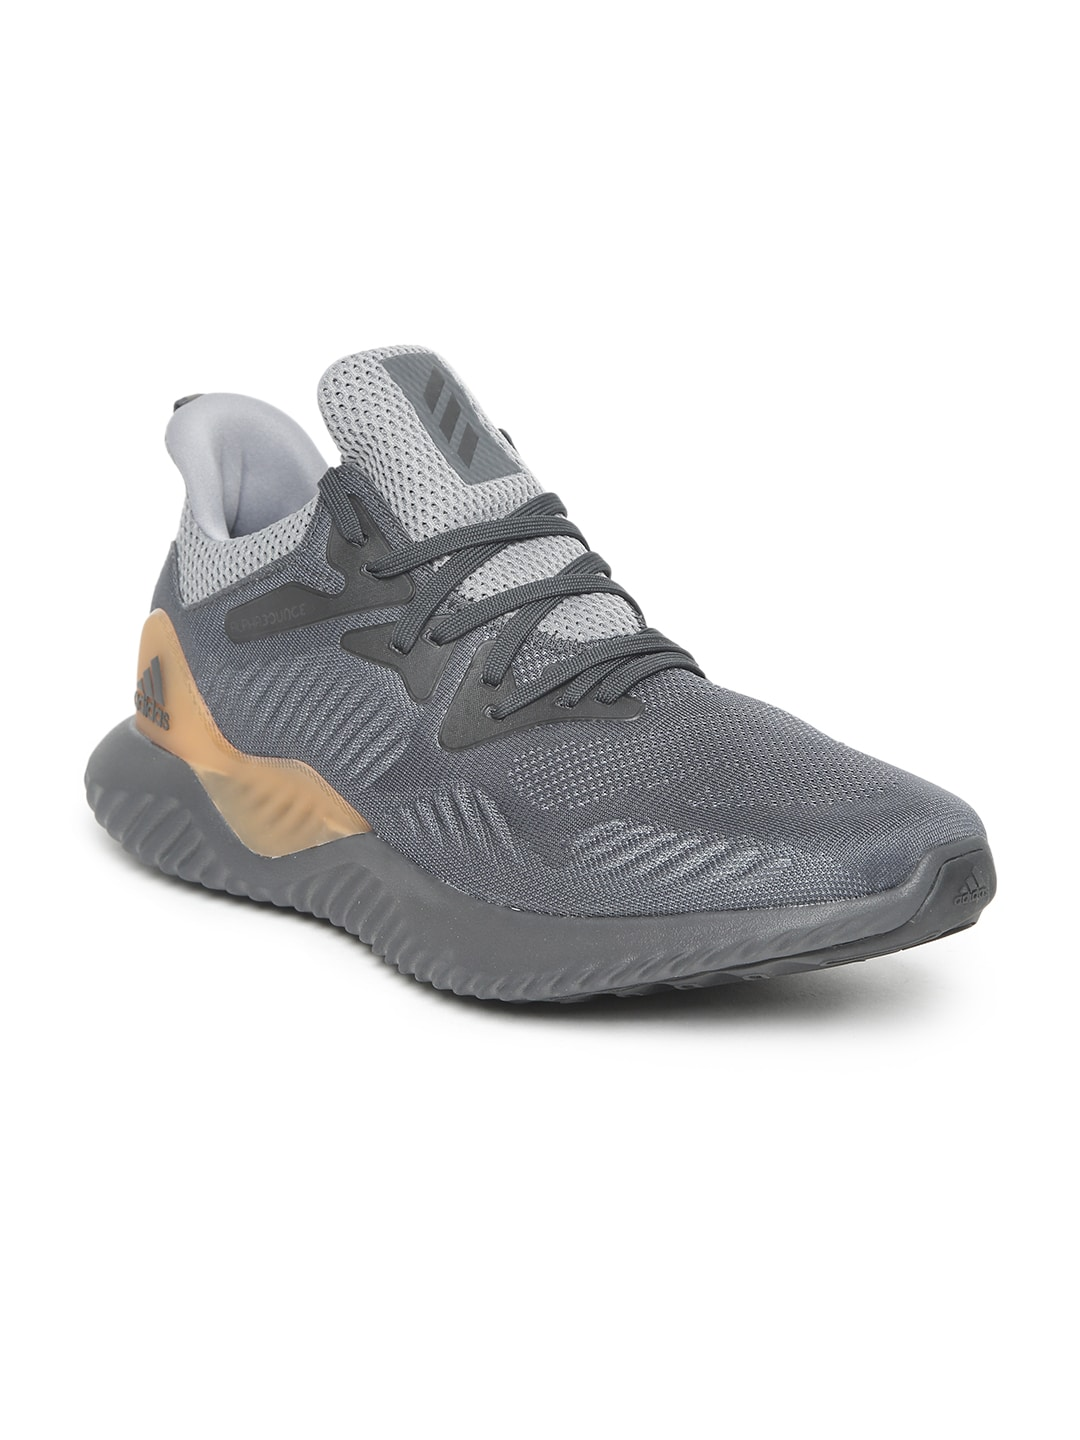 15d1725d2 Alphabounce - Buy Alphabounce online in India